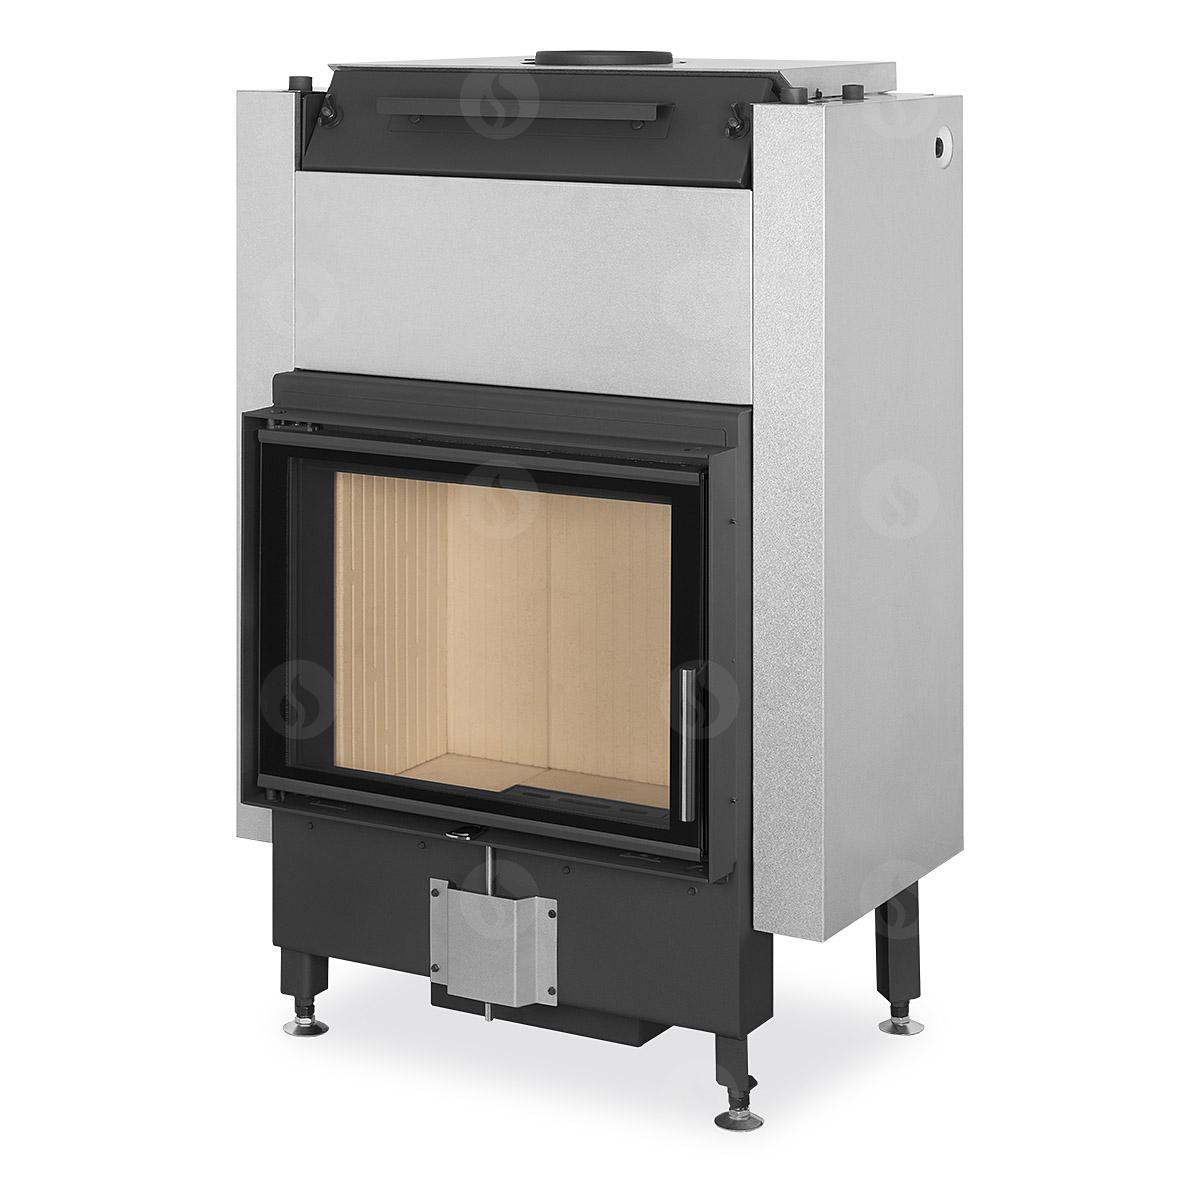 DYNAMIC W 2g 66.50.01P - fireplace insert with triple glazing and hot-water exchanger